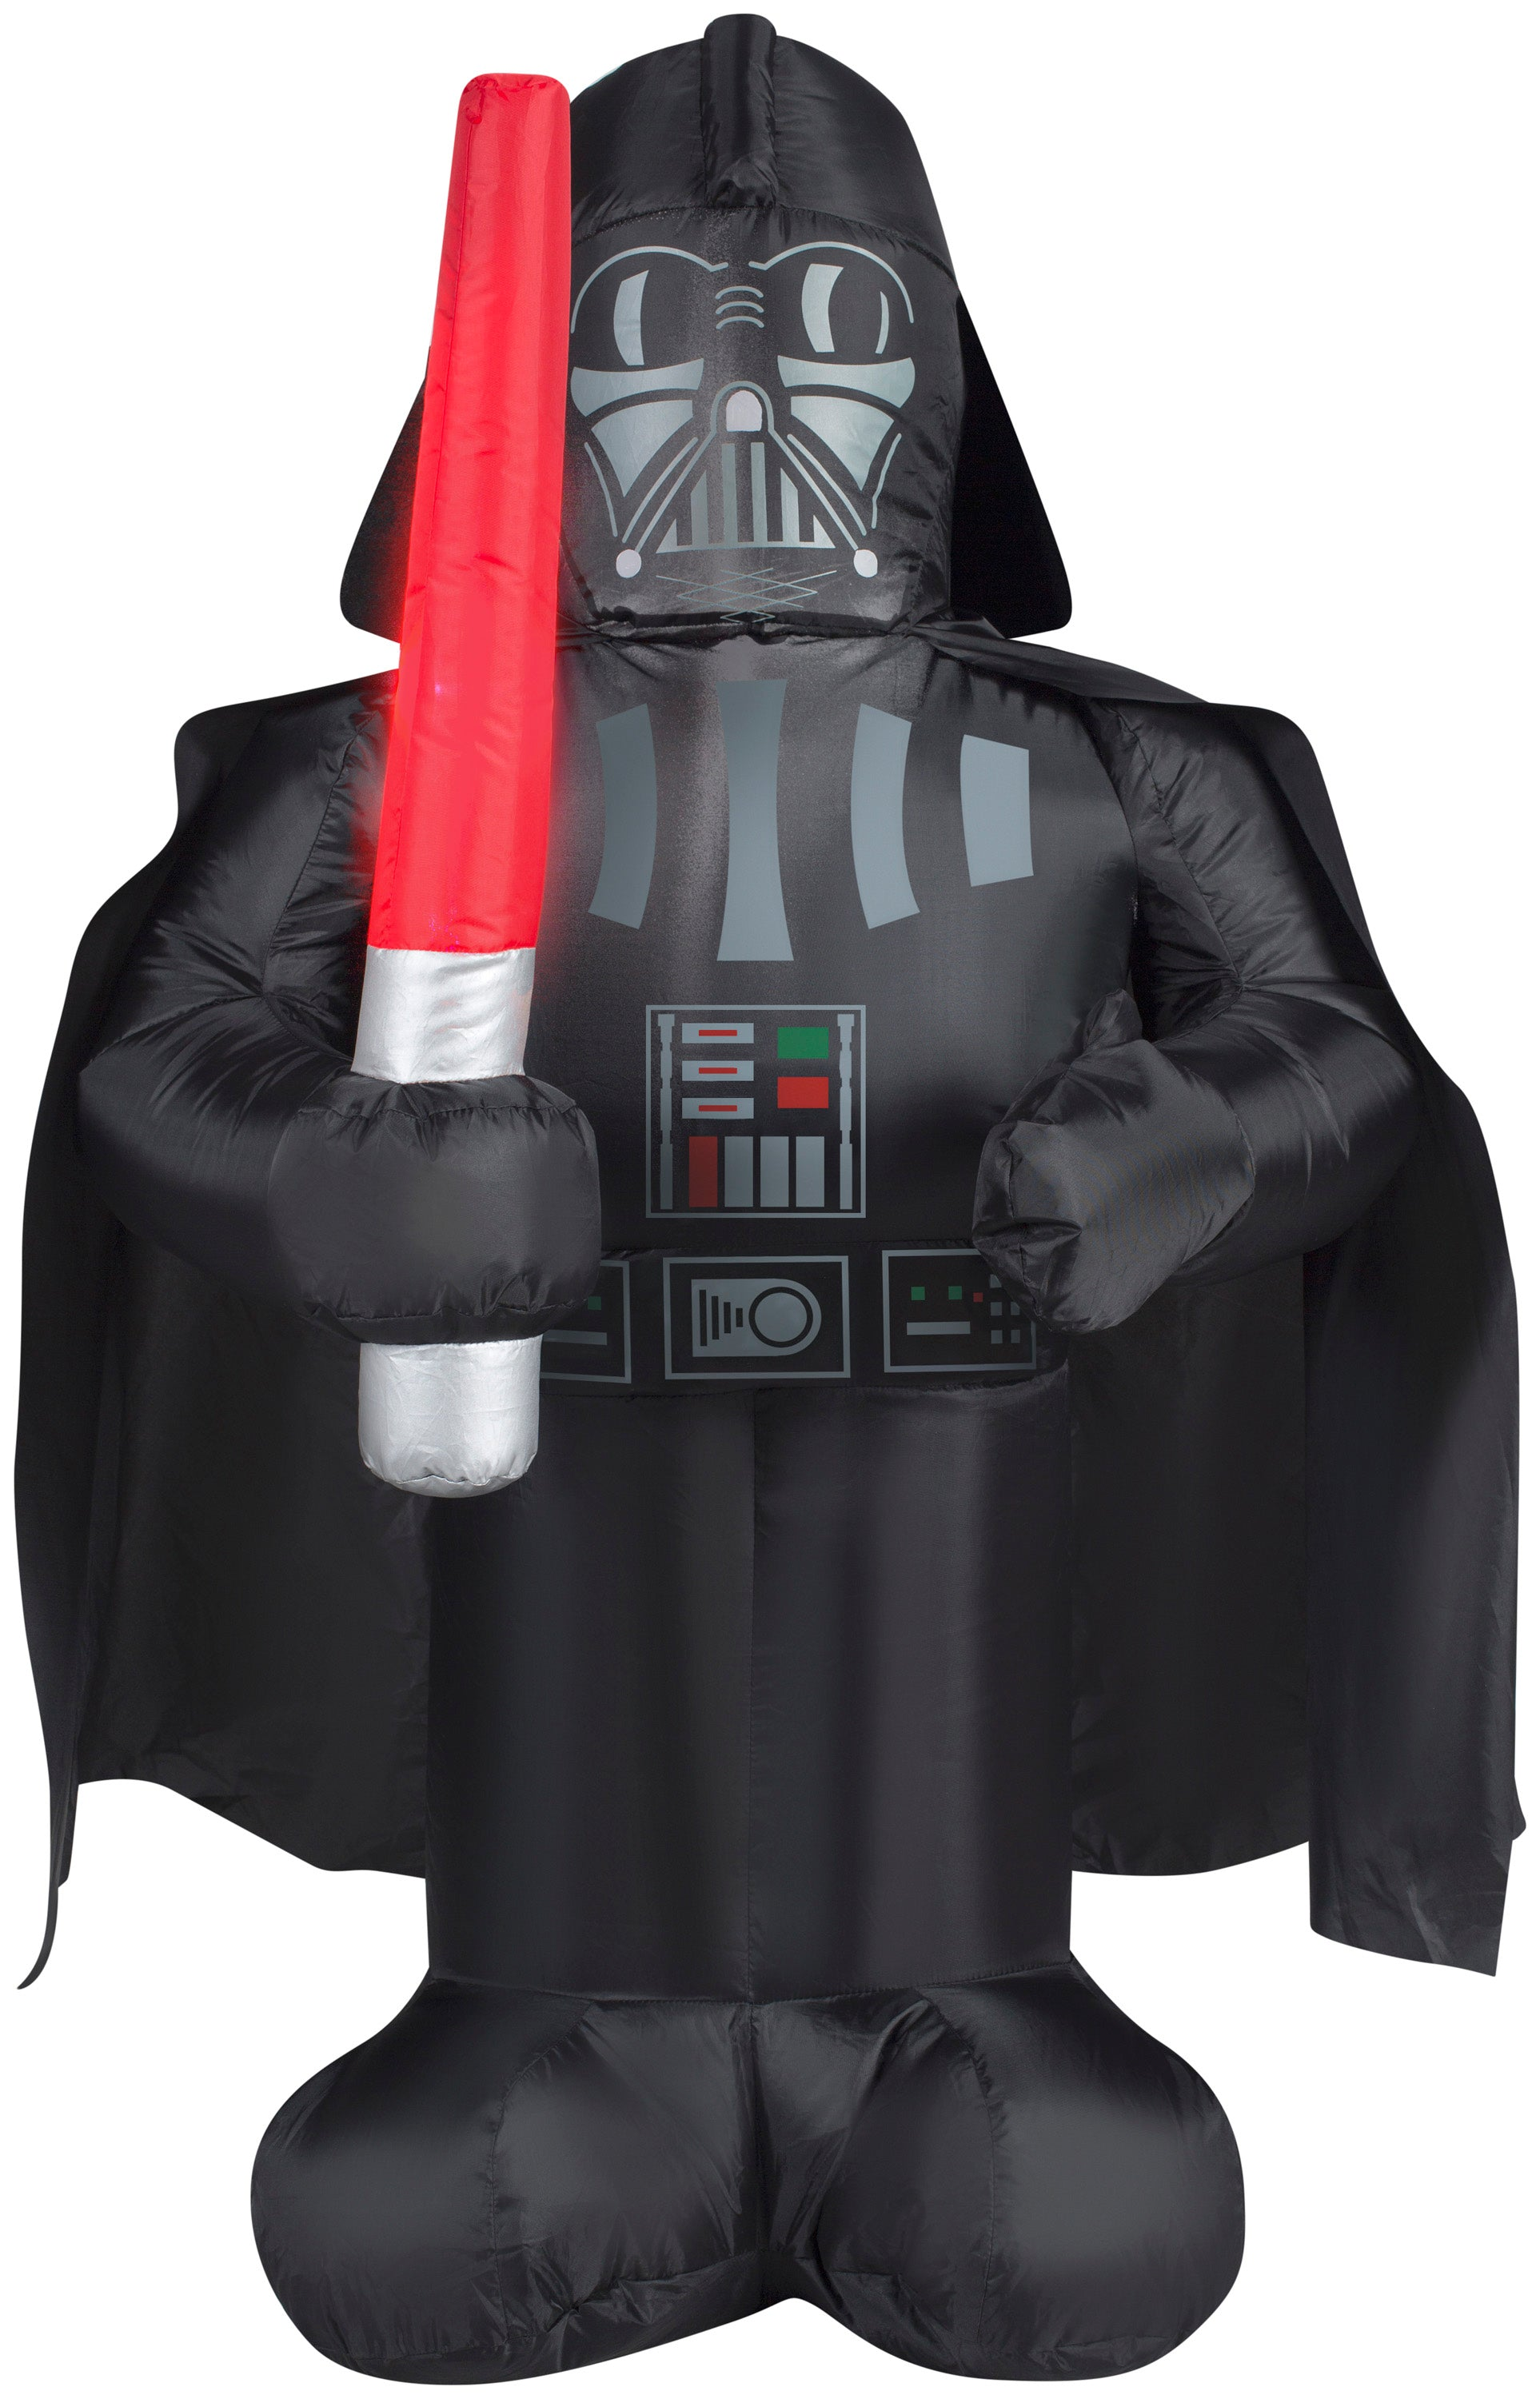 3.5' Airblown Darth Vader Star Wars Christmas Inflatable